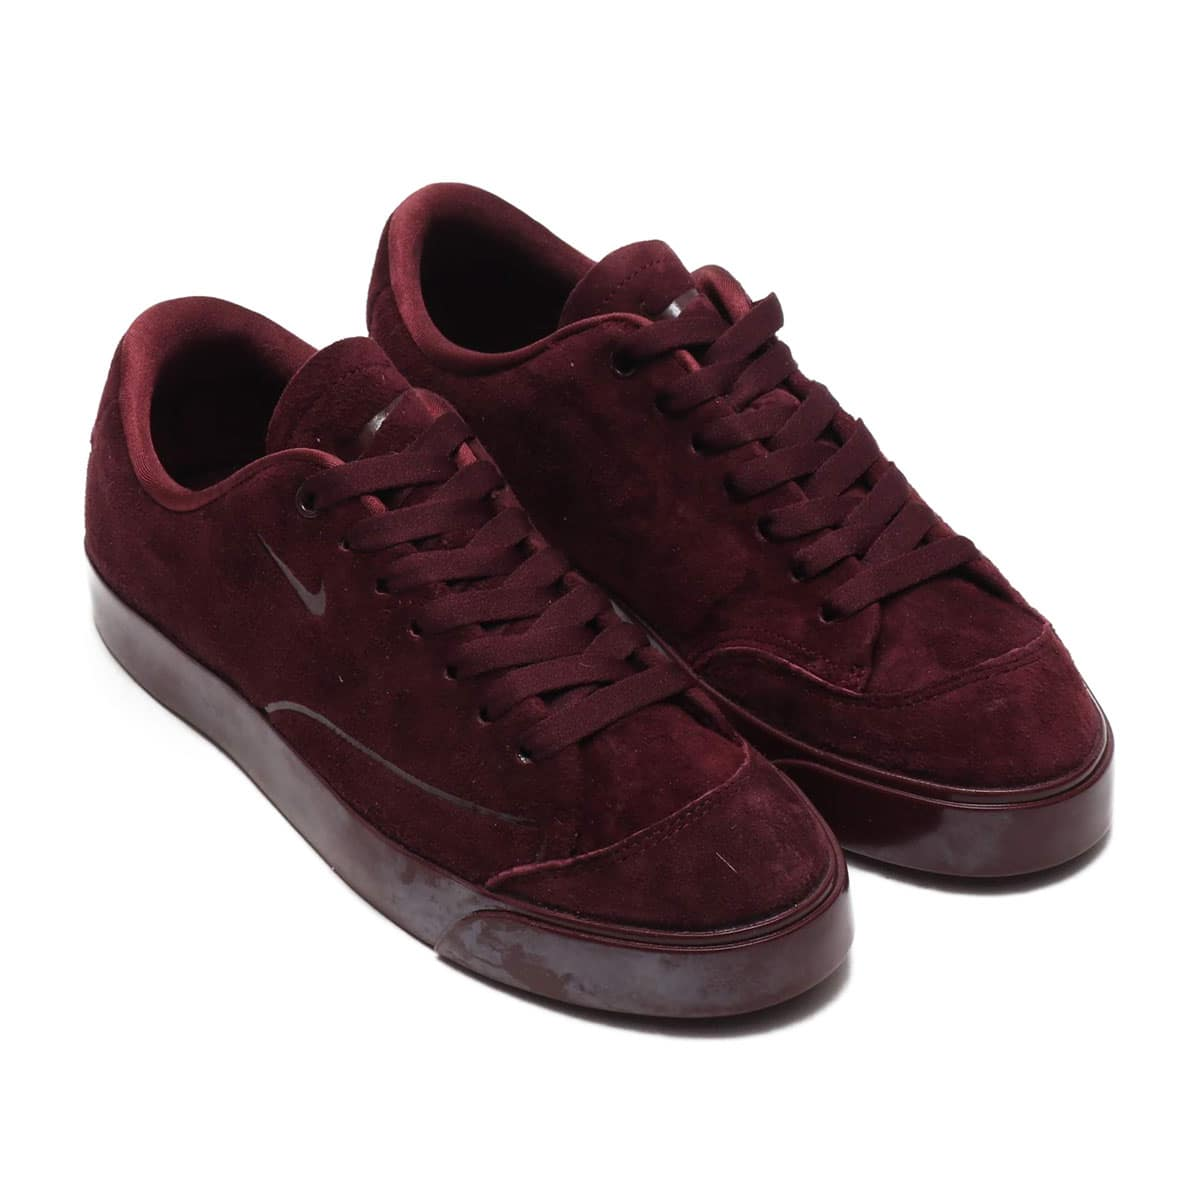 NIKE W BLAZER CITY LOW LX  BURGUNDY CRUSH/BURGUNDY CRUSH_photo_large